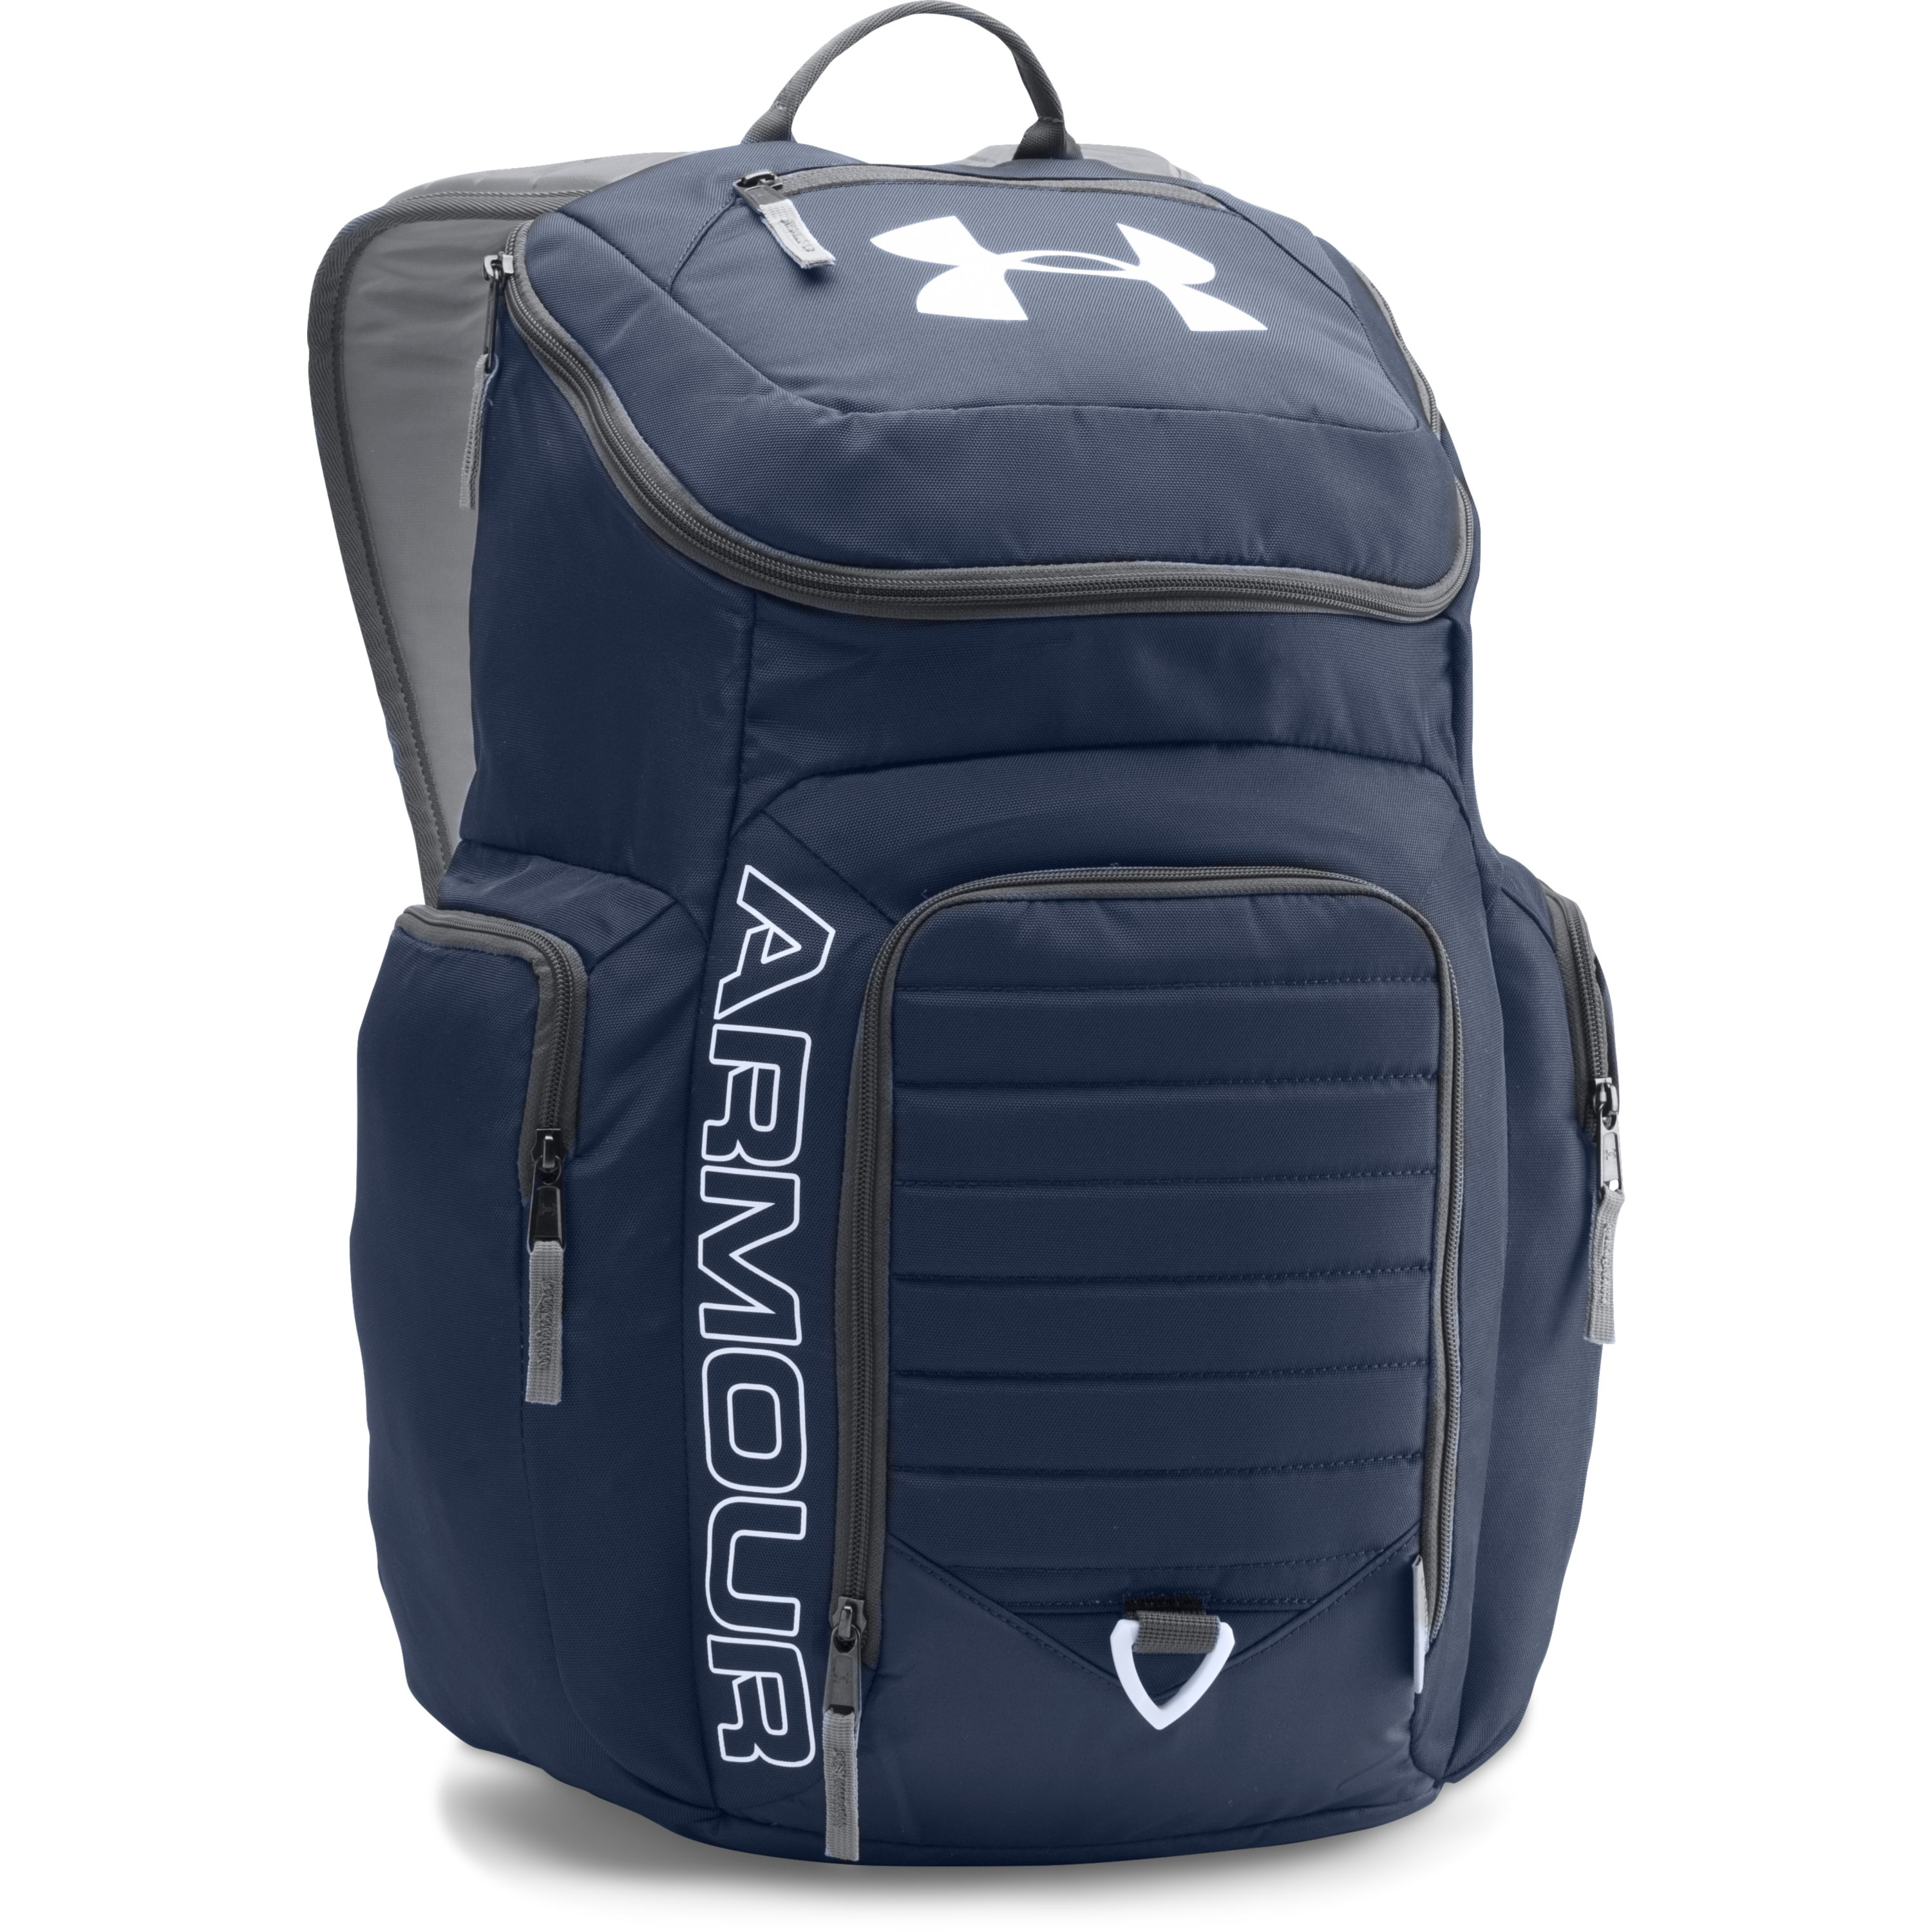 fbc4cbfc5fdb Lyst - Under Armour Ua Storm Undeniable Ii Backpack in Blue for Men